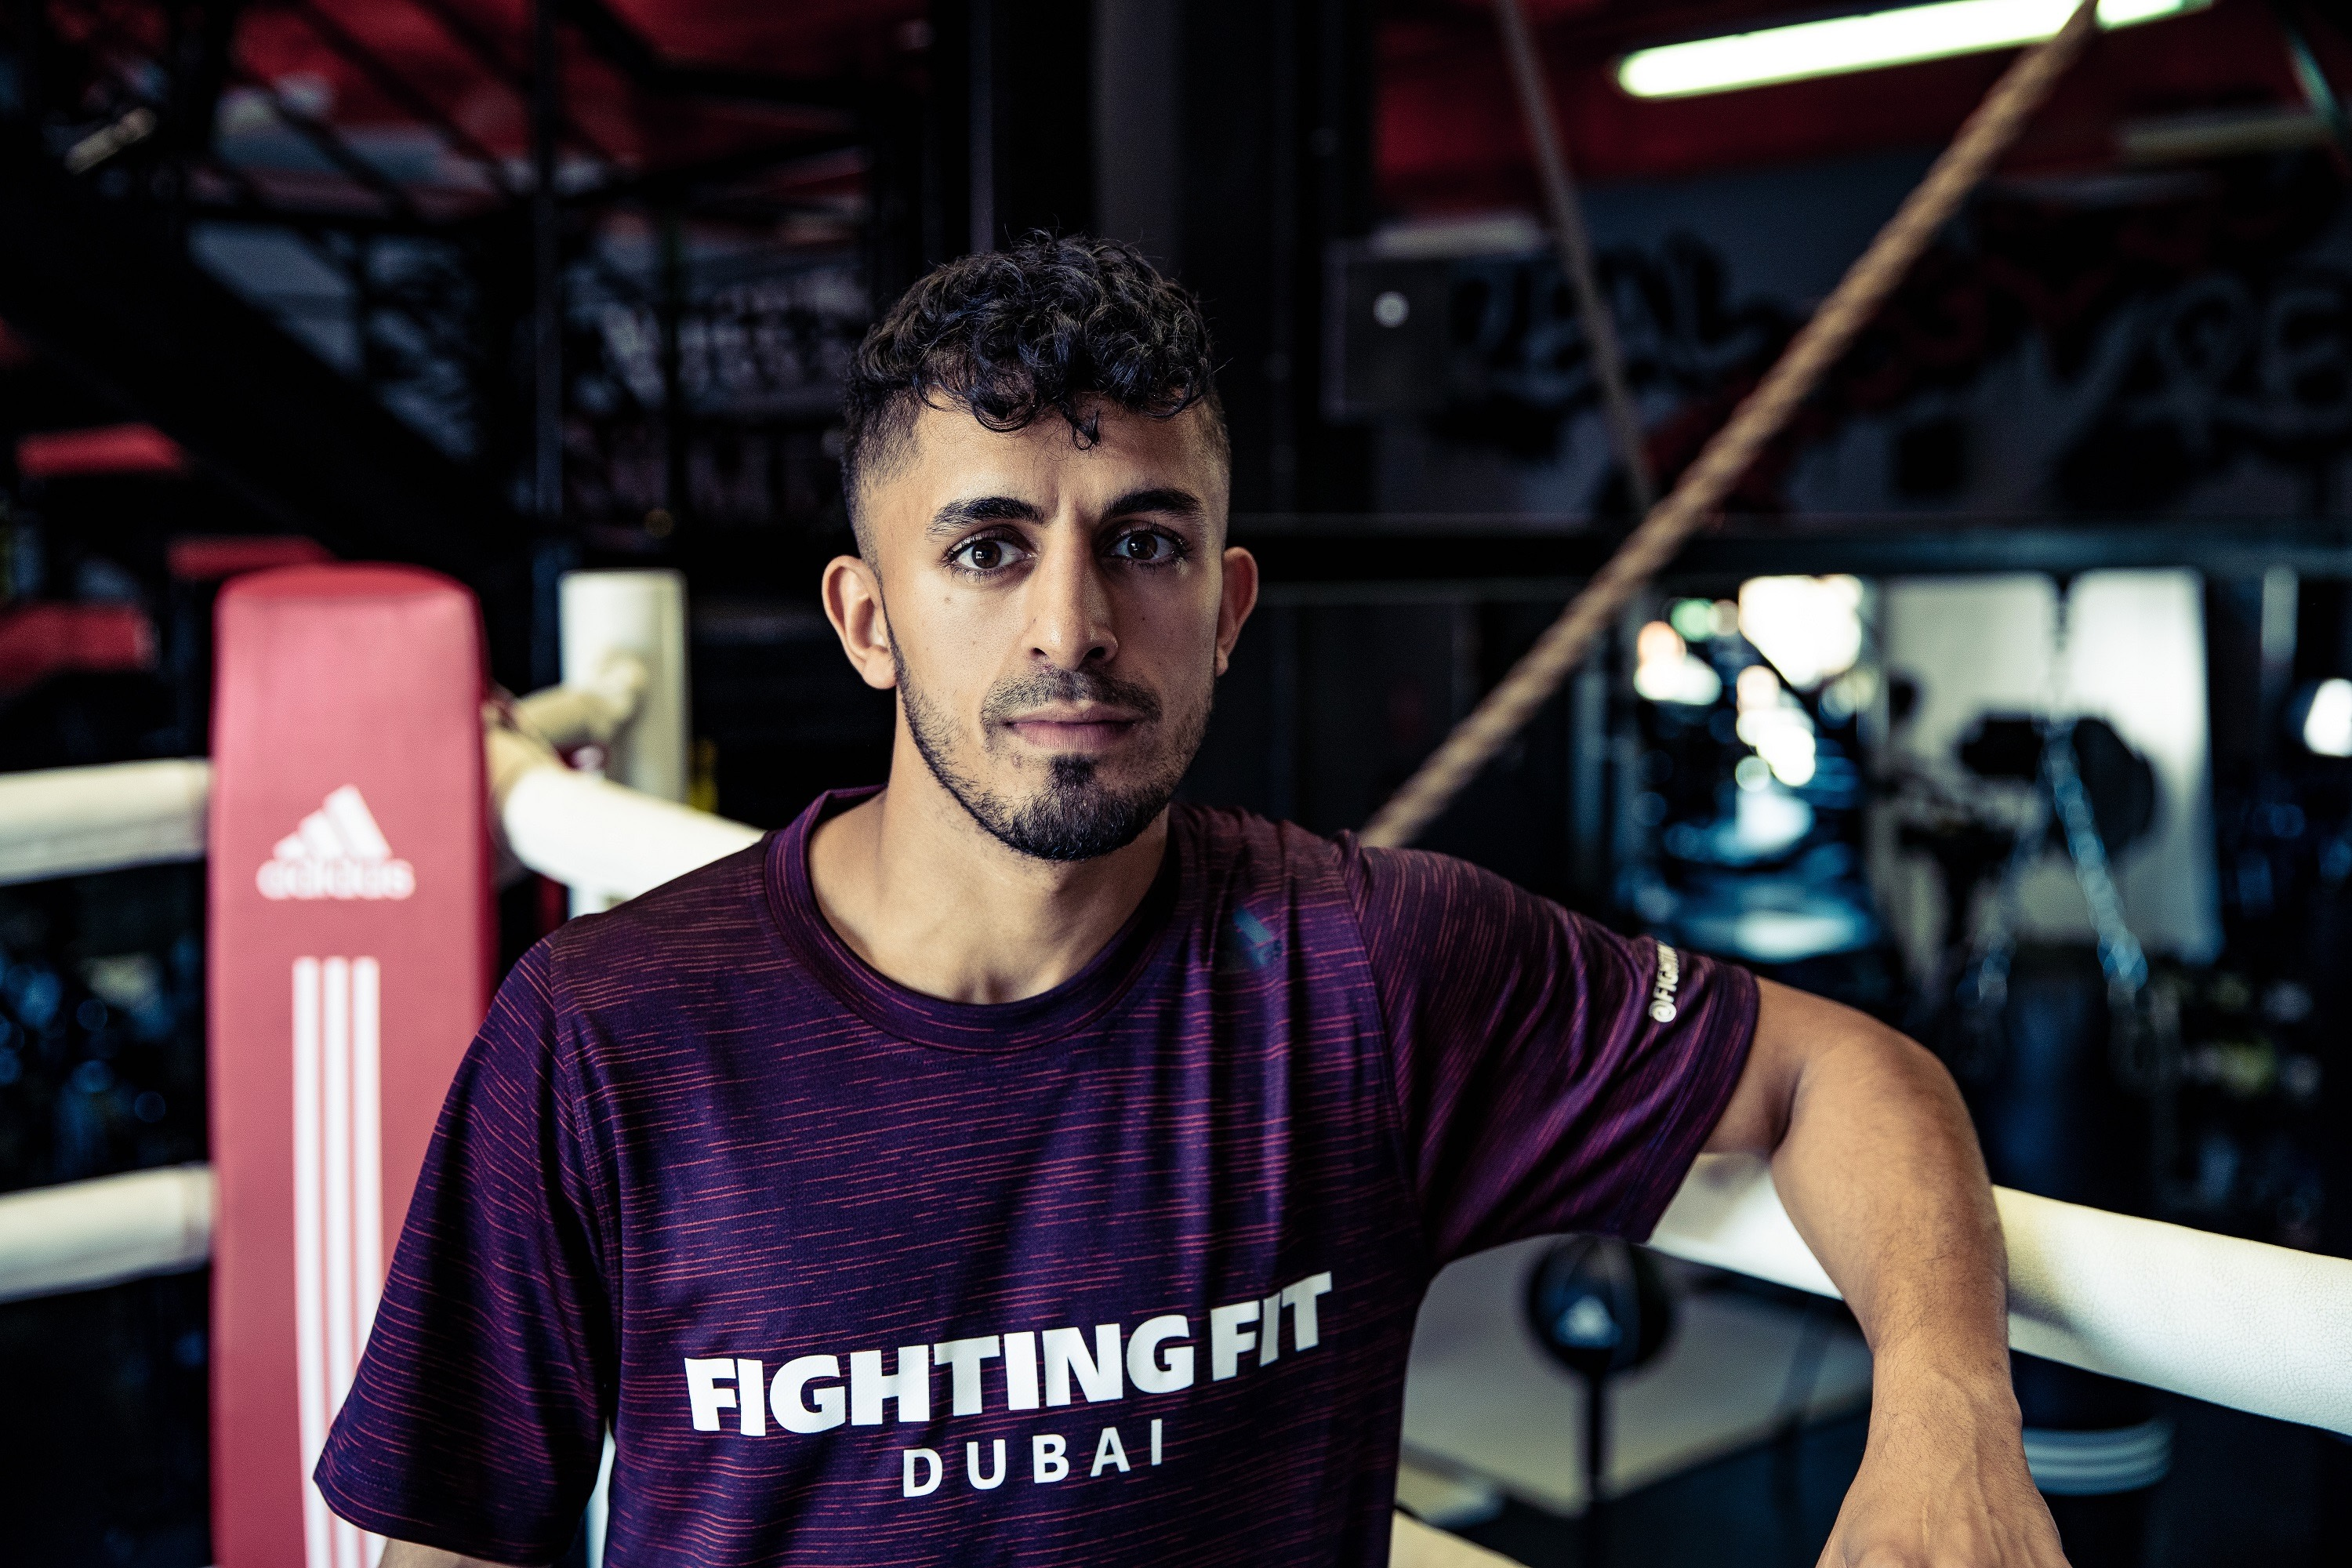 Waleed Din, Fighting Fit Dubai